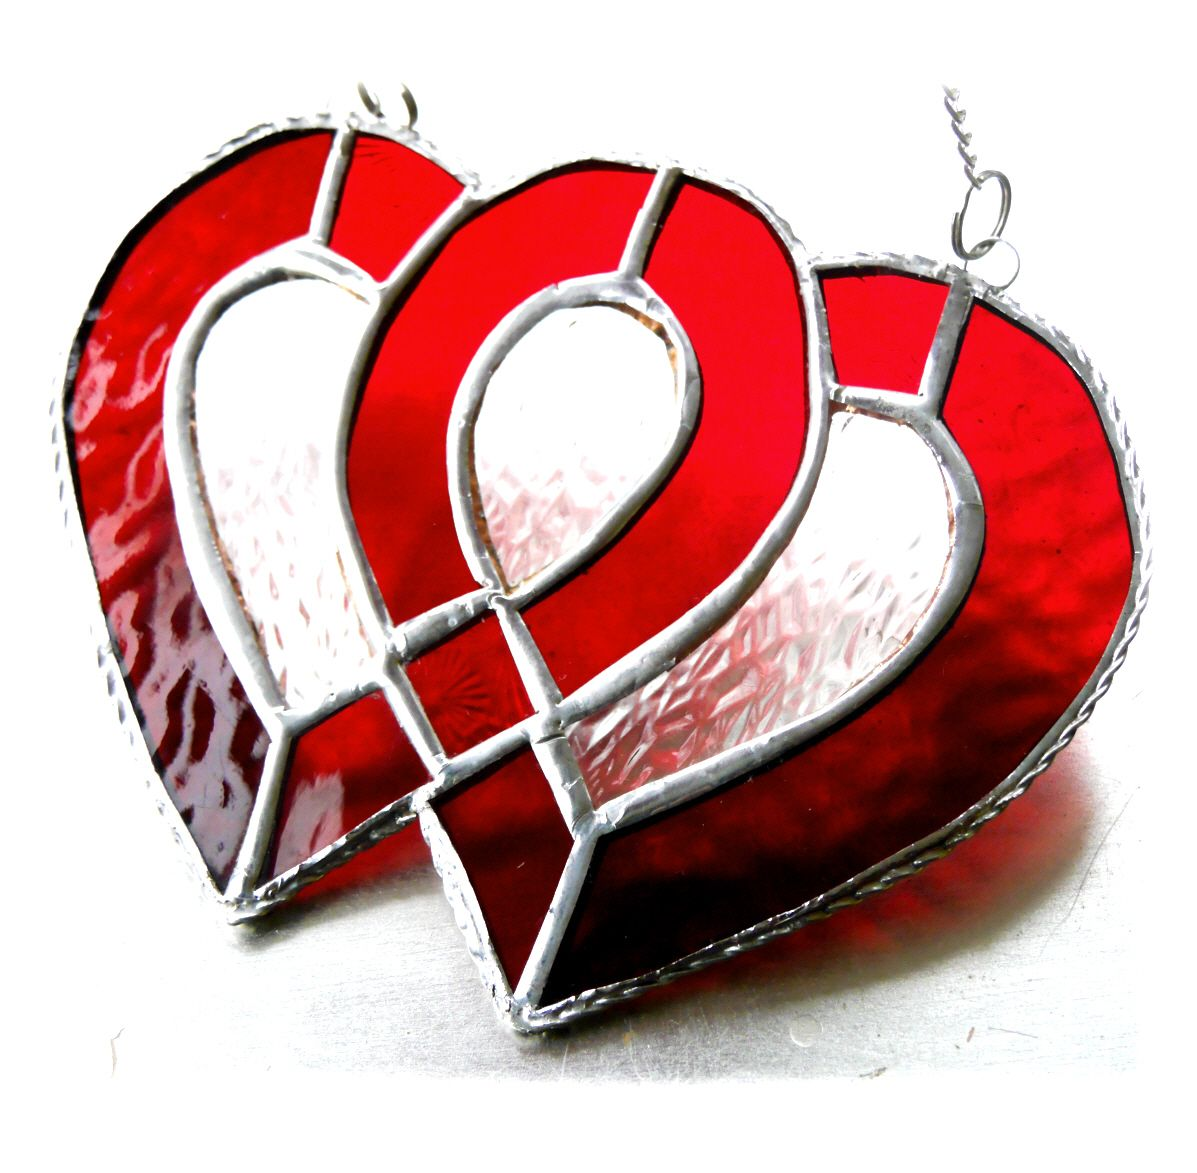 Entwined Heart 018 Red #1910 FREE 22.50